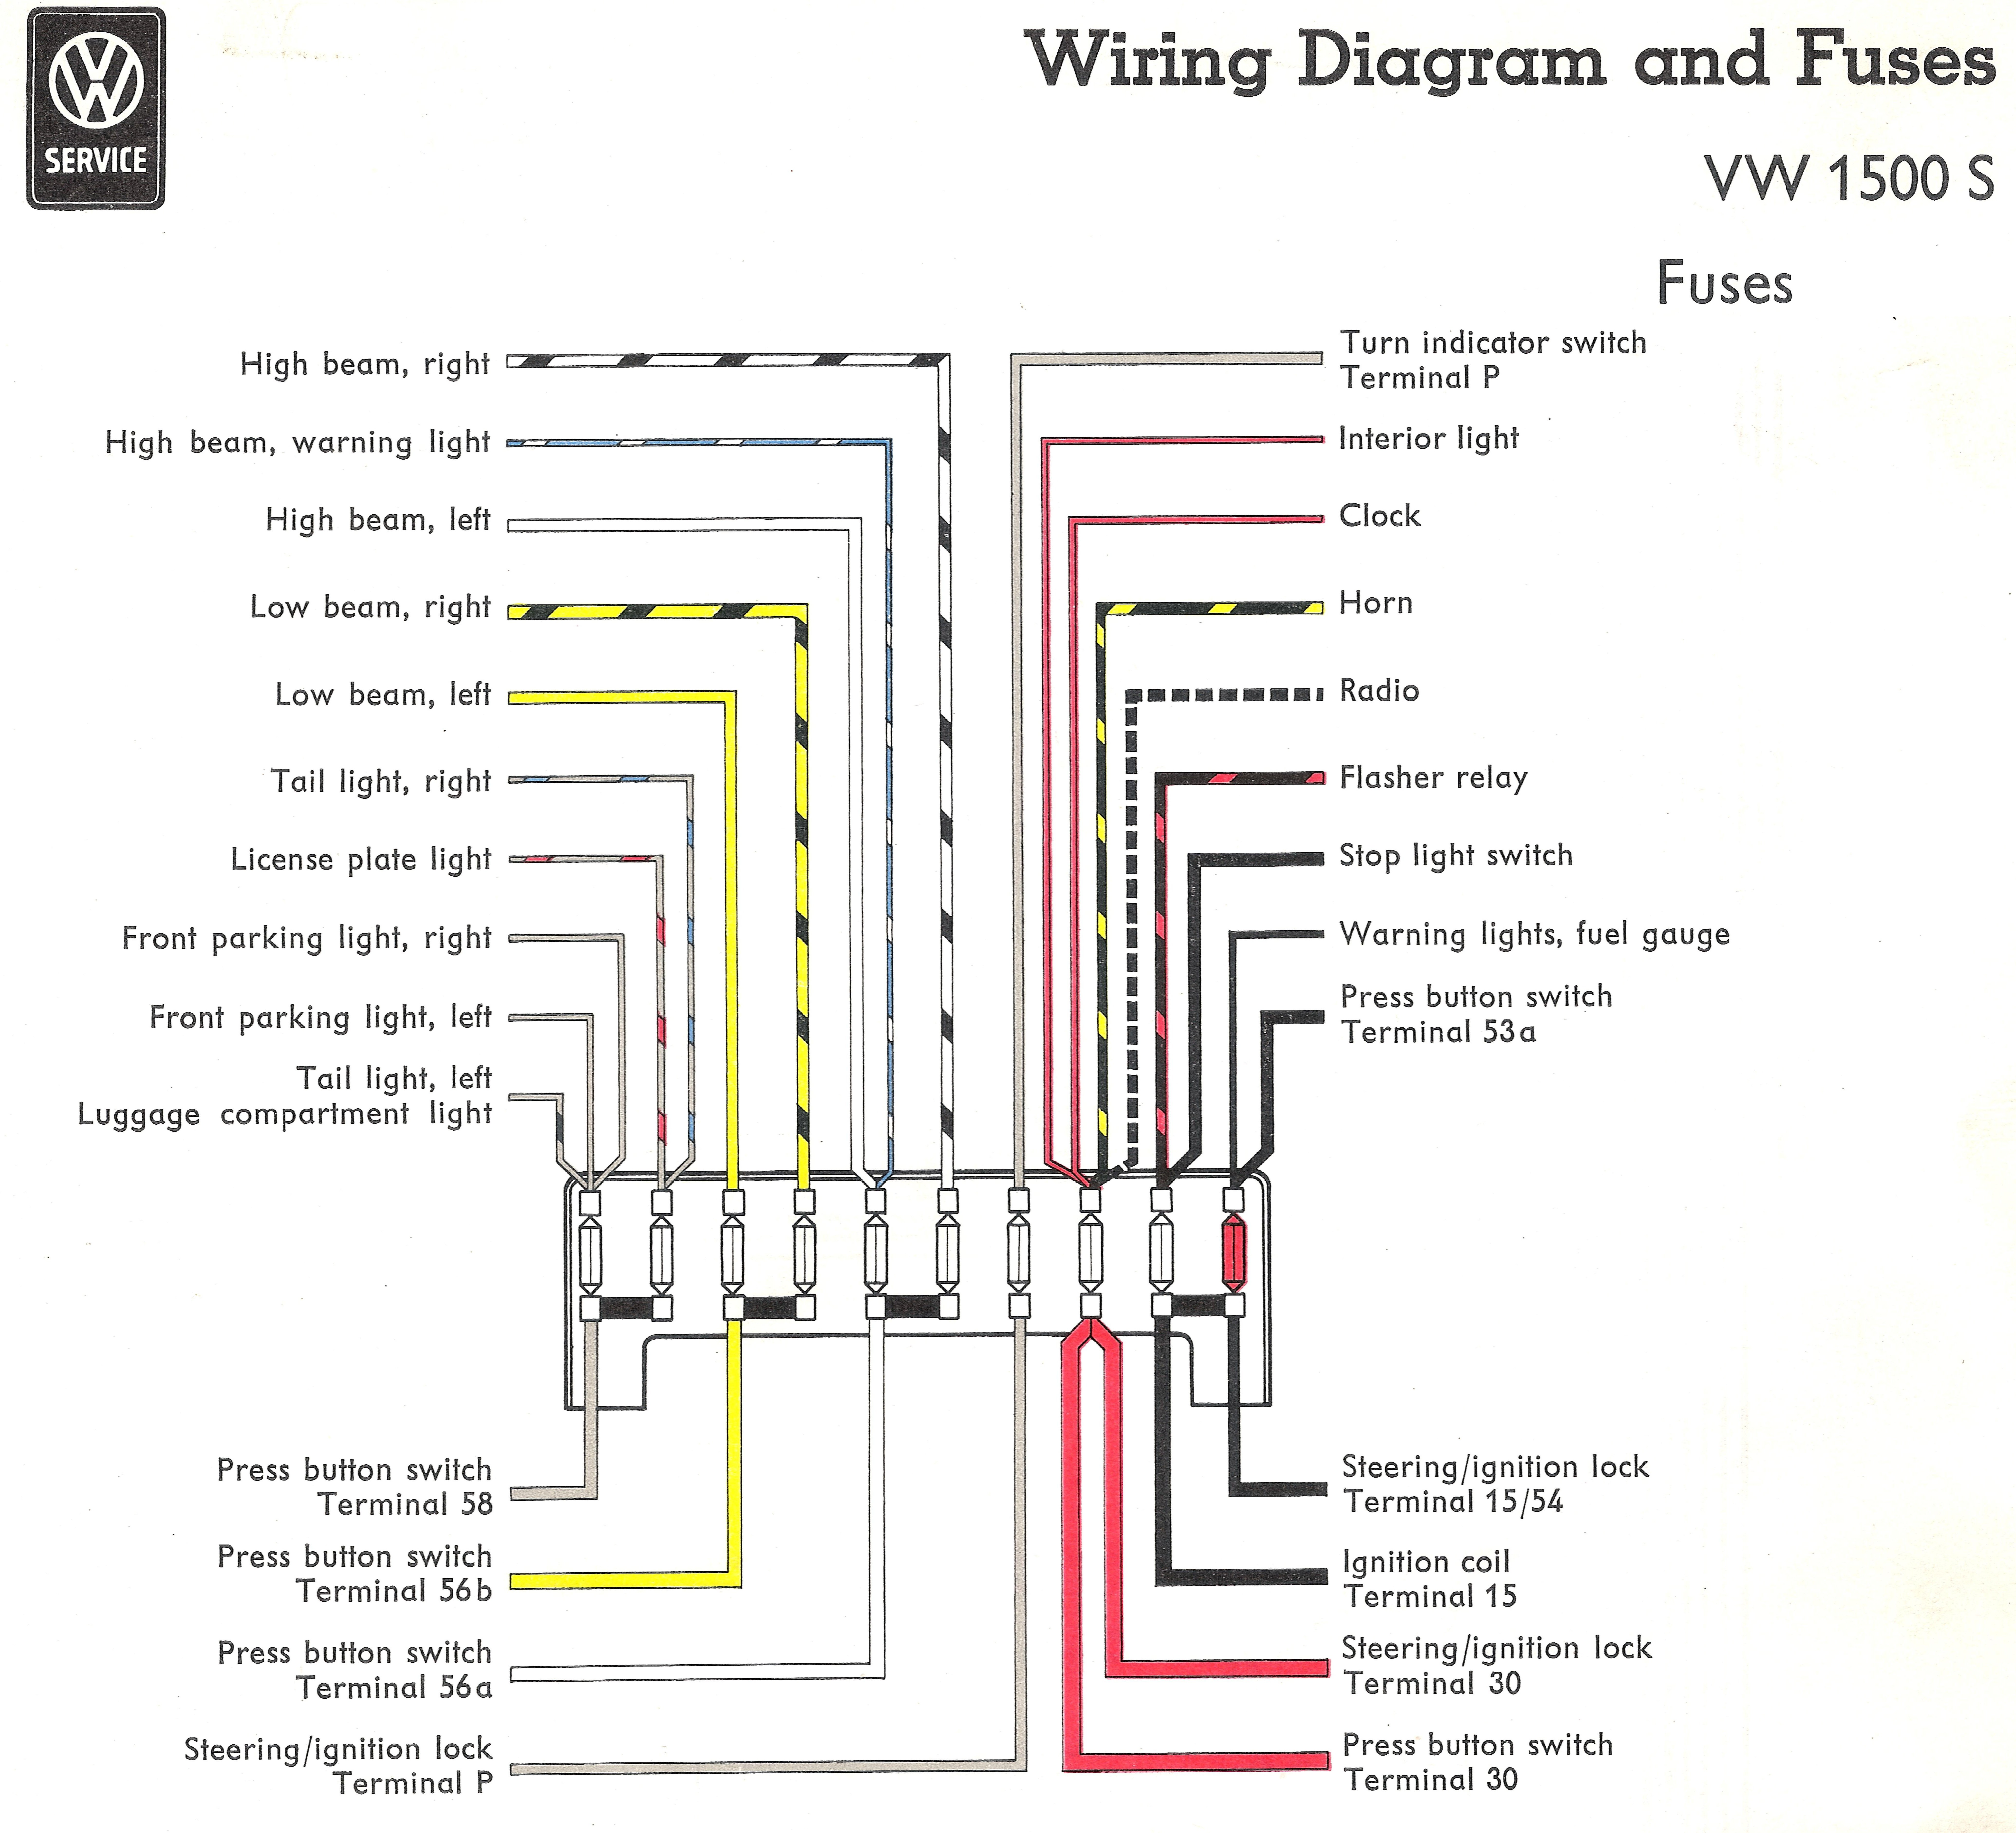 type3_1500s fuse 1200dpi thesamba com type 3 wiring diagrams fuse panel wiring diagram at n-0.co